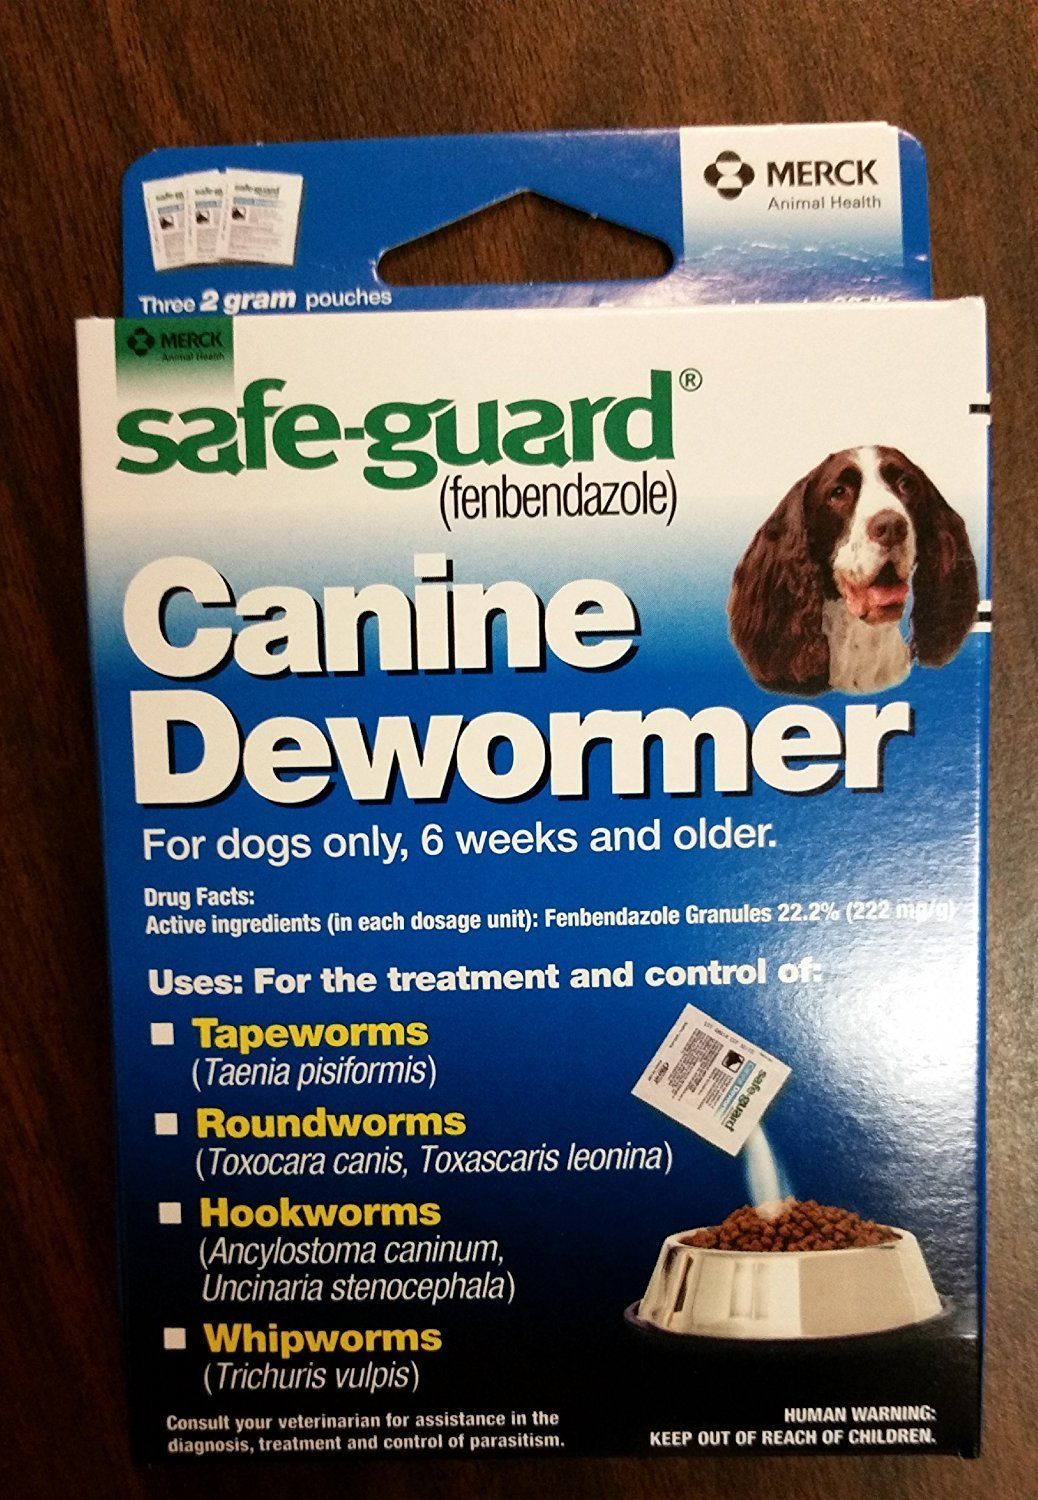 (2 Packages) 8in1 SafeGuard Canine Dewormer Three 2